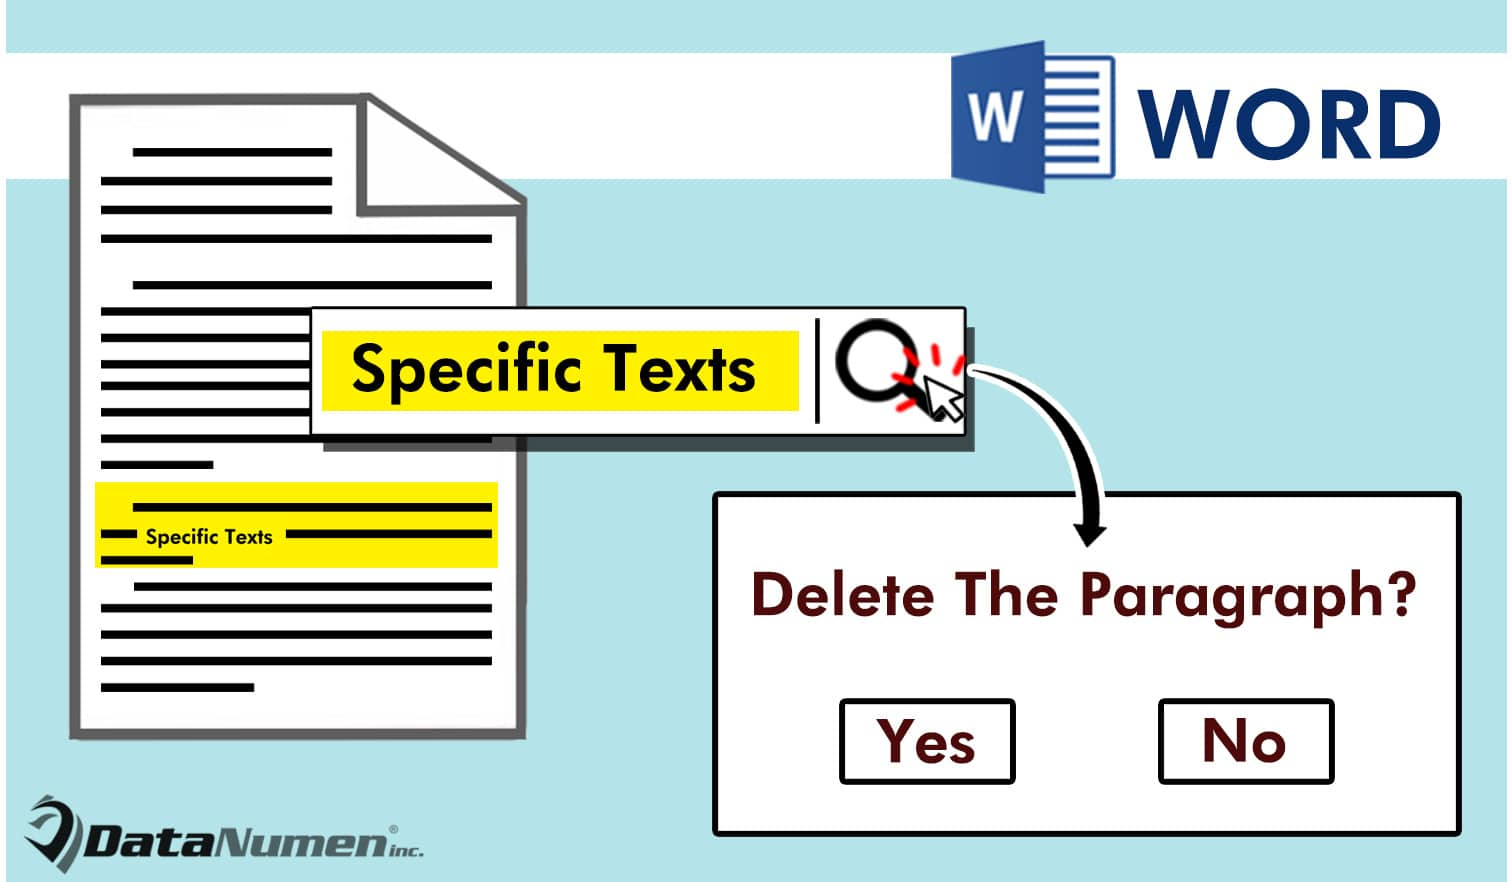 Find or Delete Paragraphs Containing Specific Texts in Your Word Document